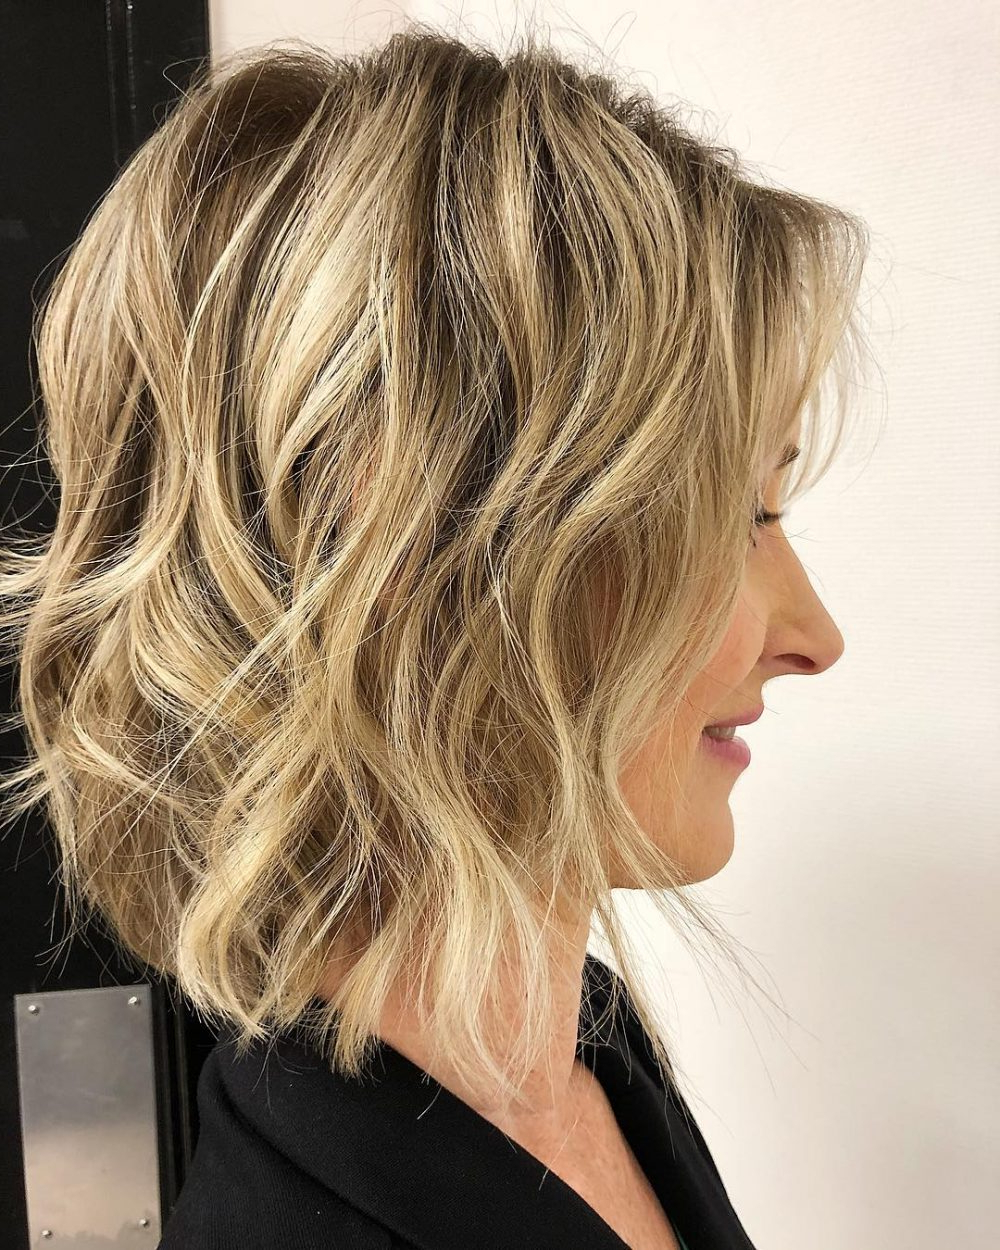 43 Perfect Short Hairstyles For Fine Hair In 2018 For Nape Length Blonde Curly Bob Hairstyles (View 9 of 20)